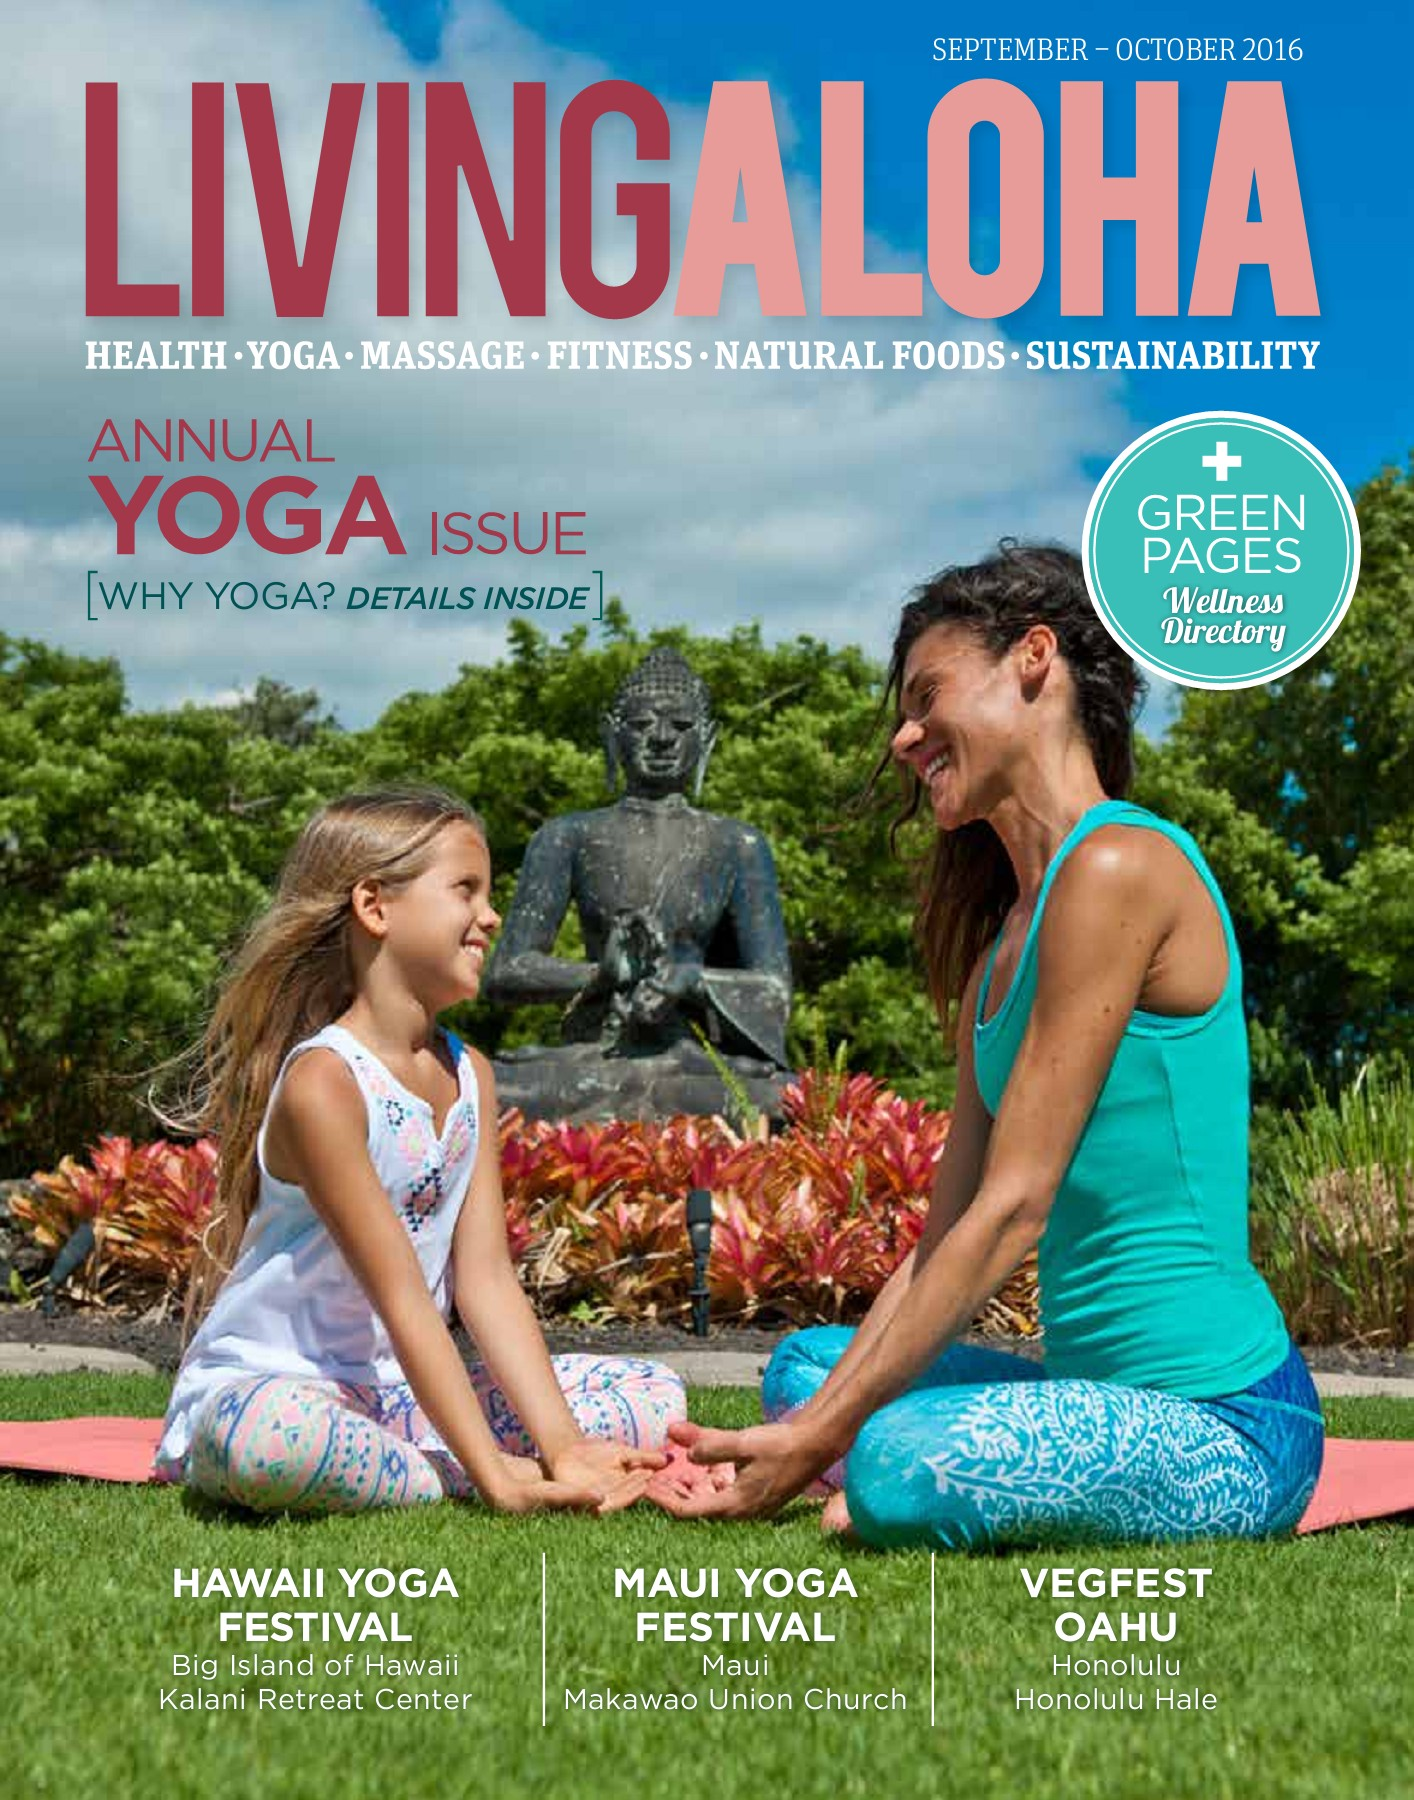 Living Aloha Magazine Sep Oct 2016 Issue 17 Pages 1 48 Text Version Anyflip